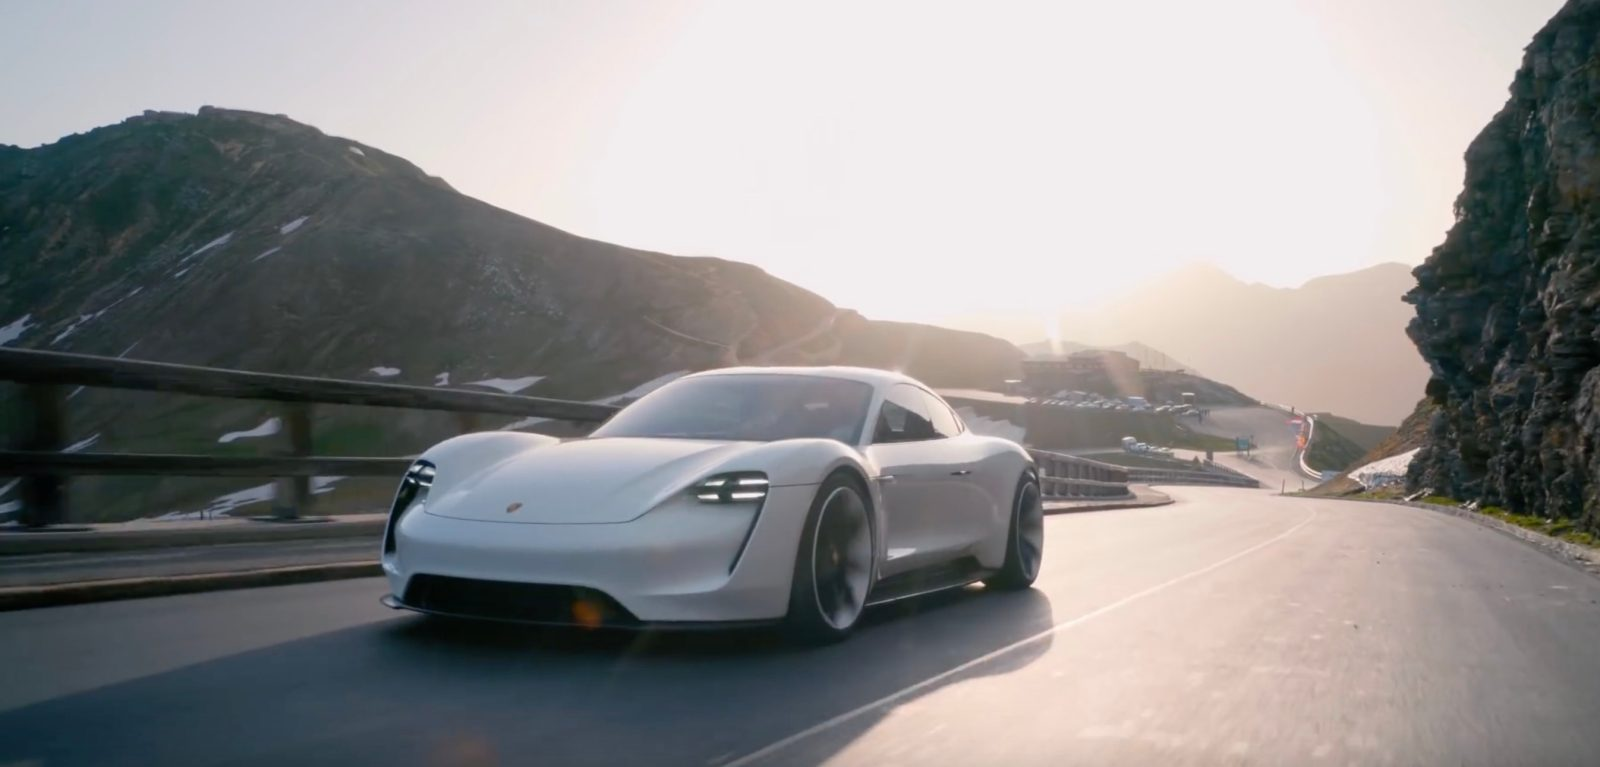 Watch The Porsche Taycan Electric Concept On Mountain Roads In New Dji Mavic 2 Drone Footage